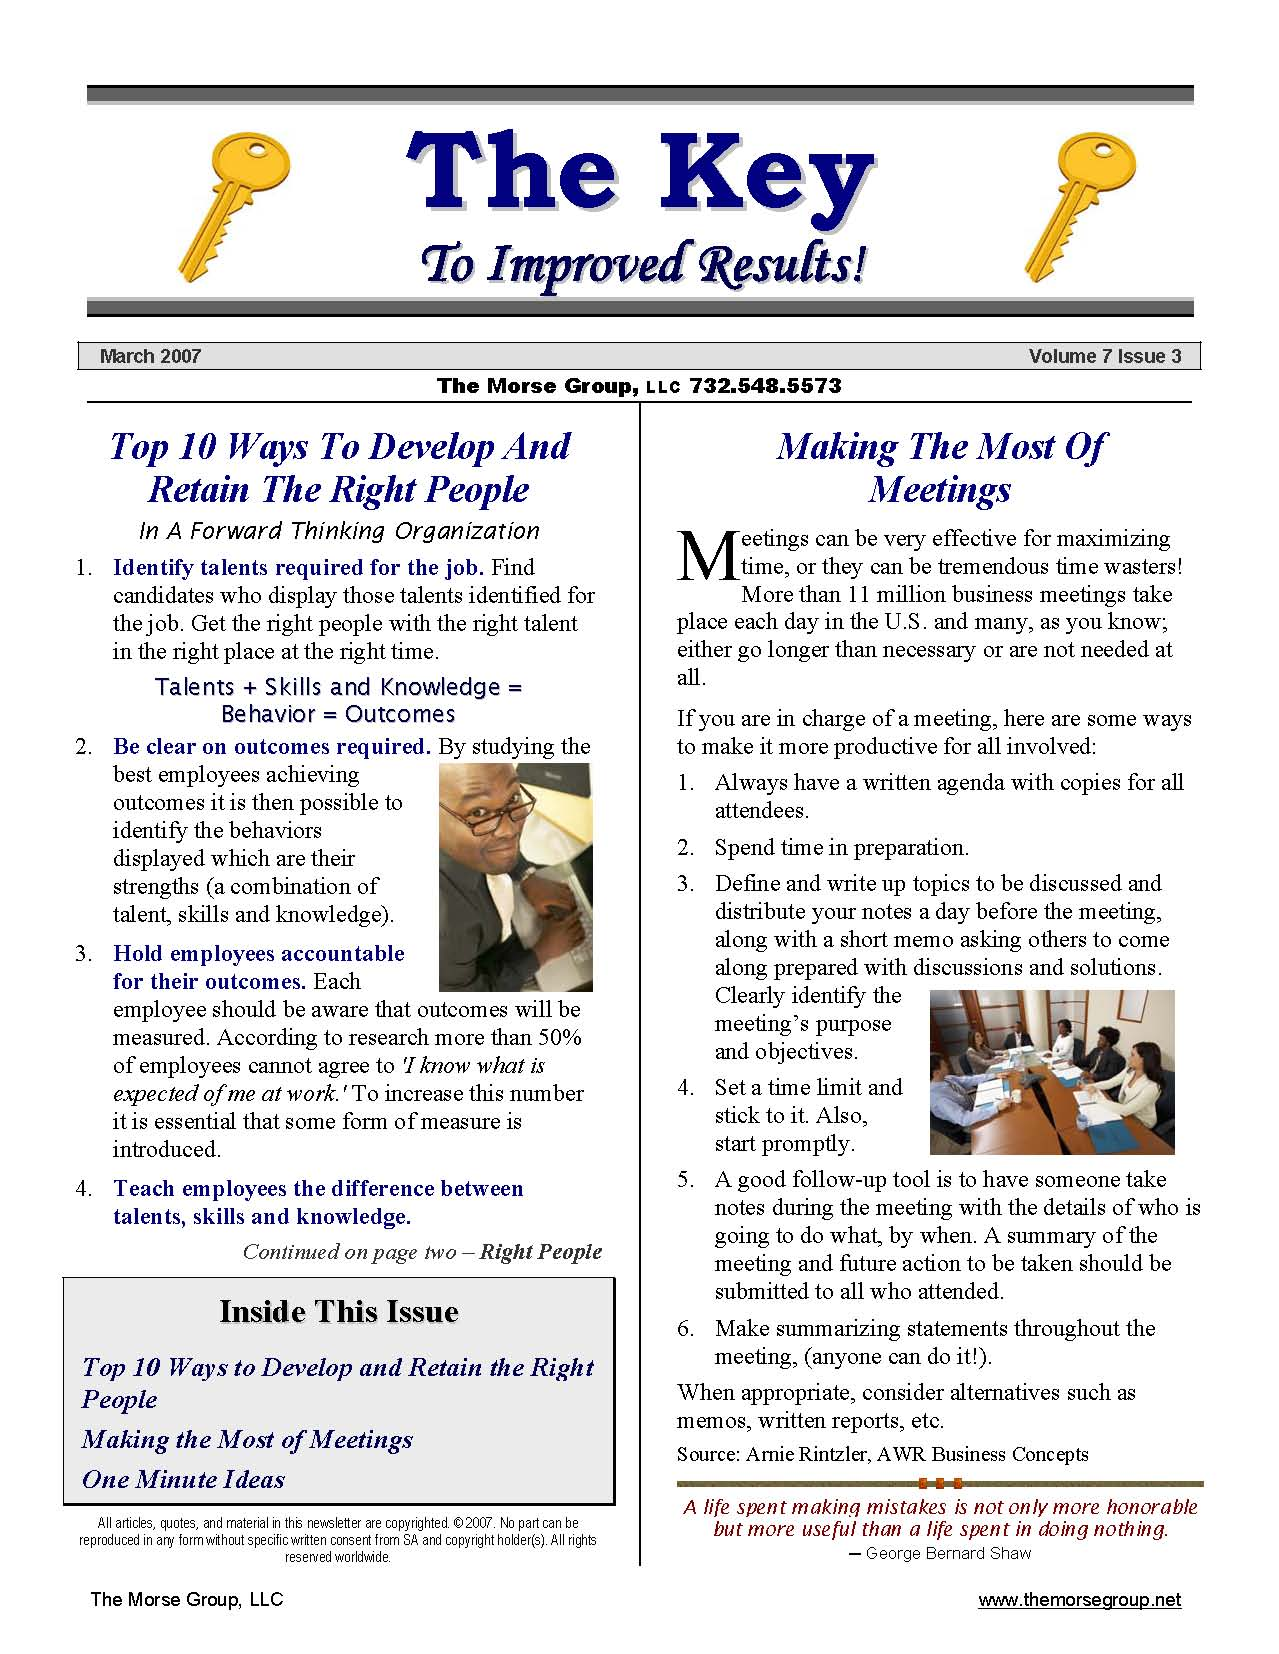 Newsletter & blog articles provided, plus Free Newsletter Design